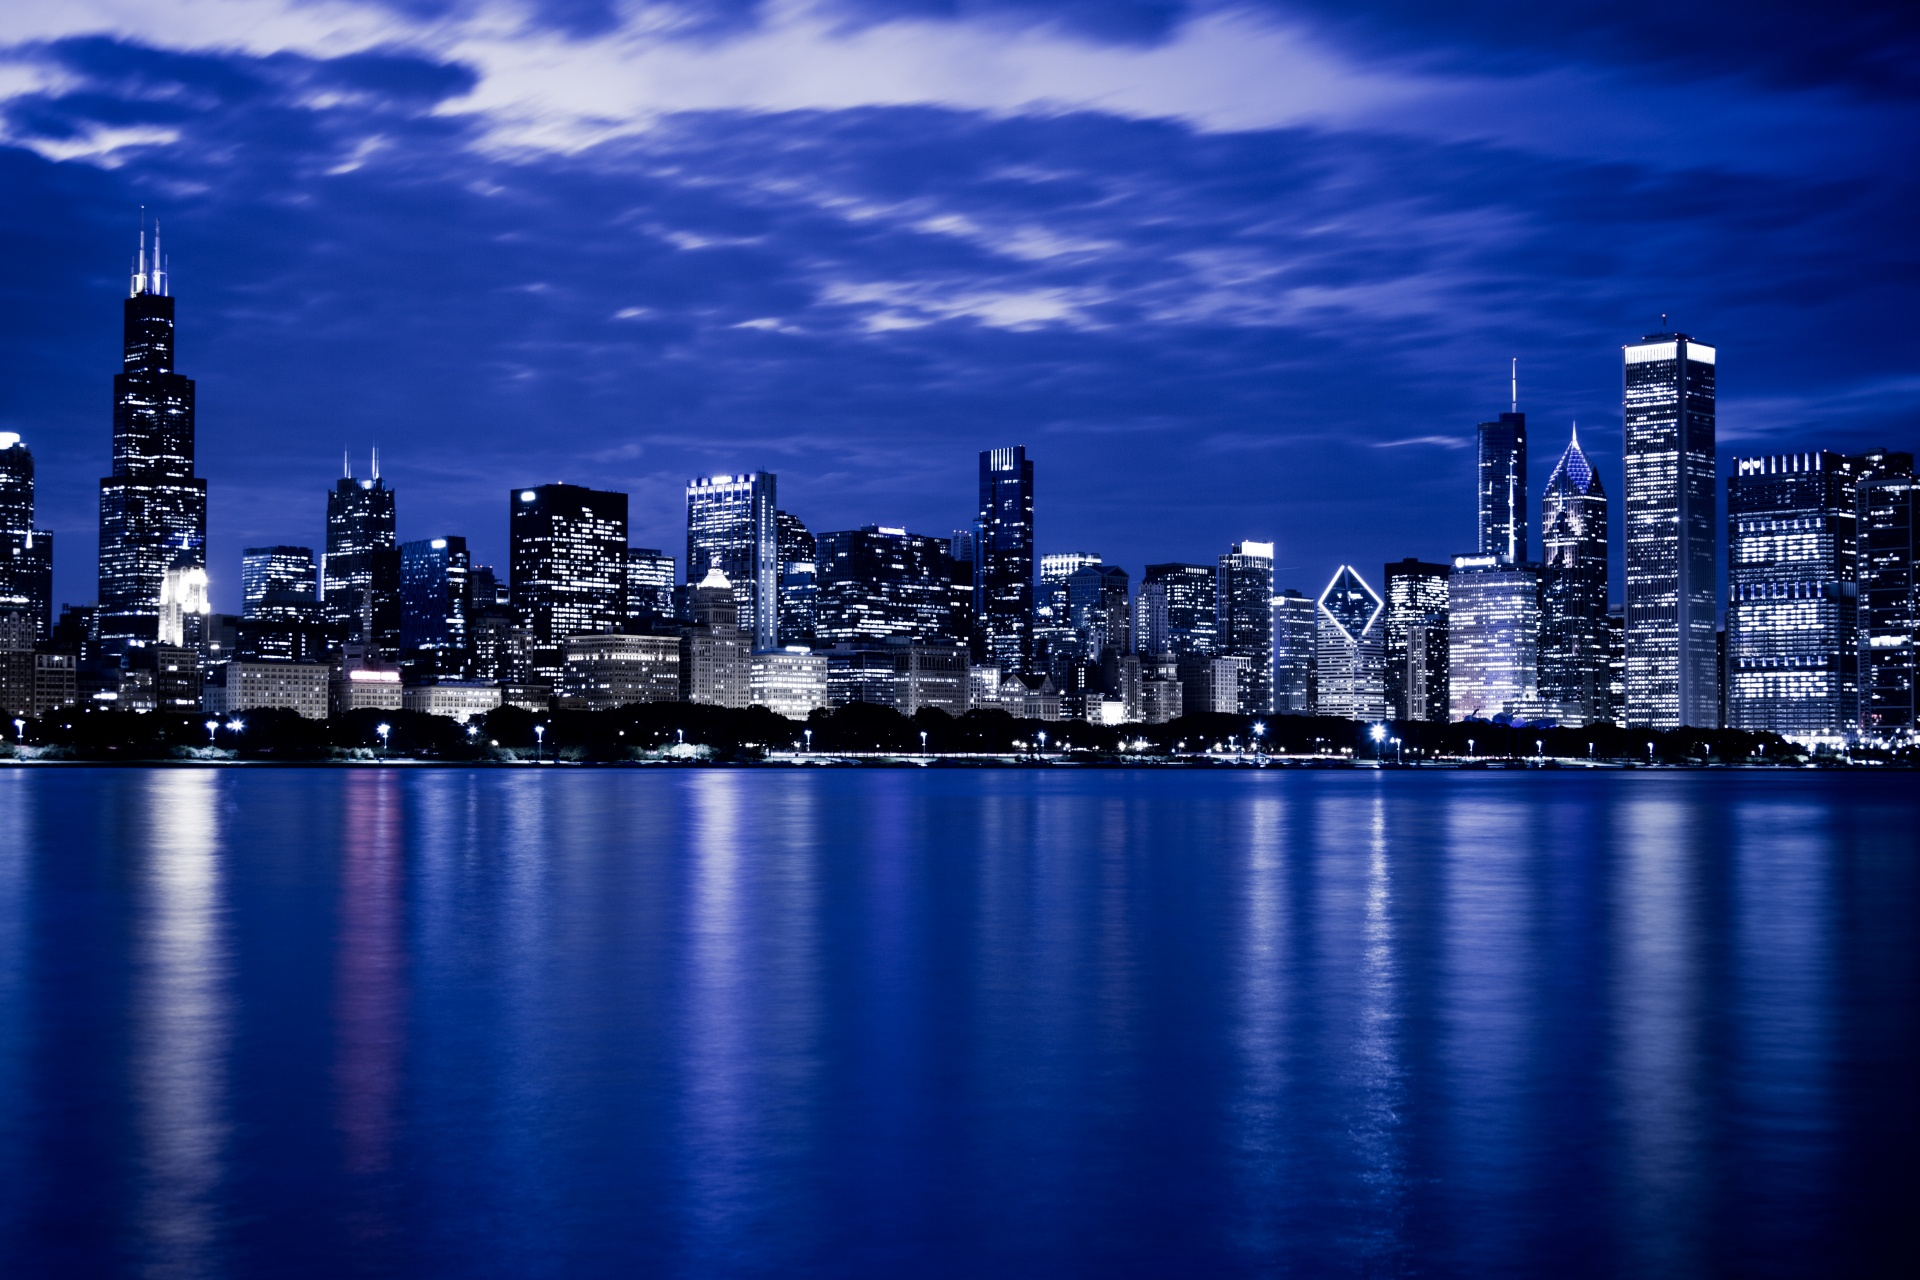 Fall Background Wallpaper Hd Chicago Skyline At Night Free Stock Photo Public Domain